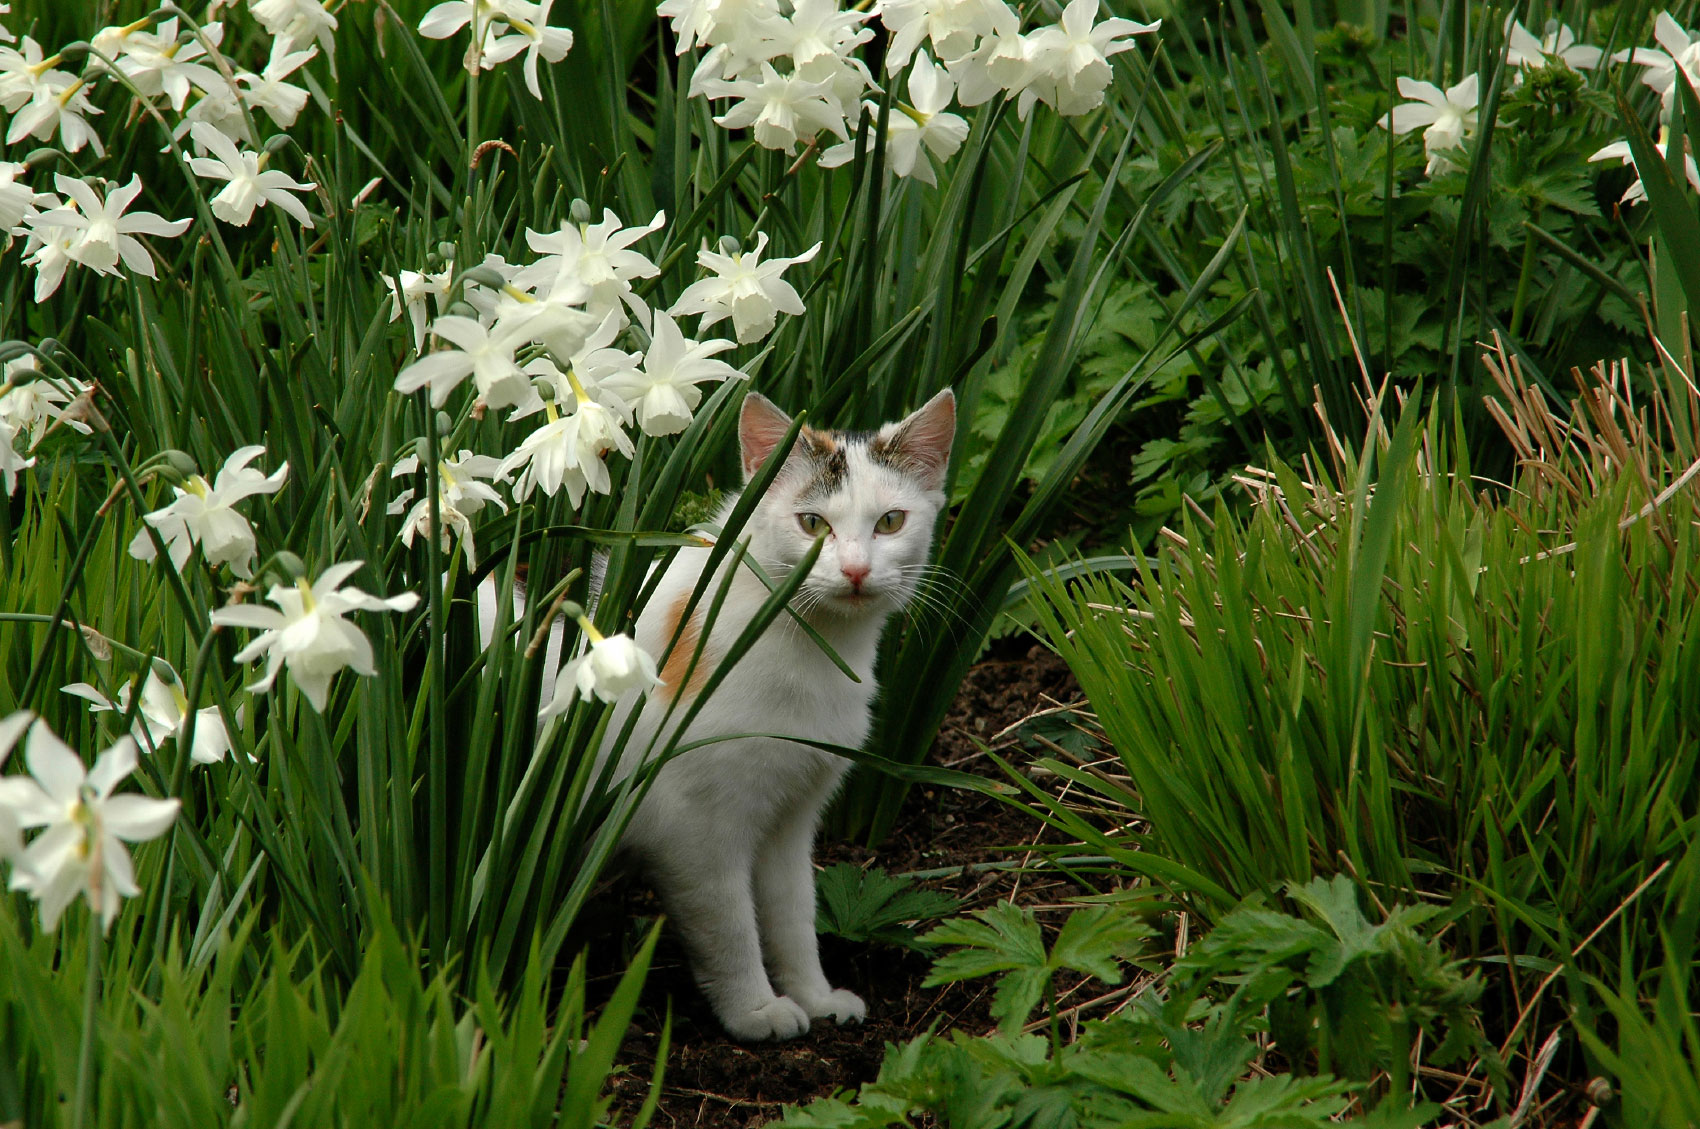 15 Expert Tips on How to Keep Cats Out of Your Yard